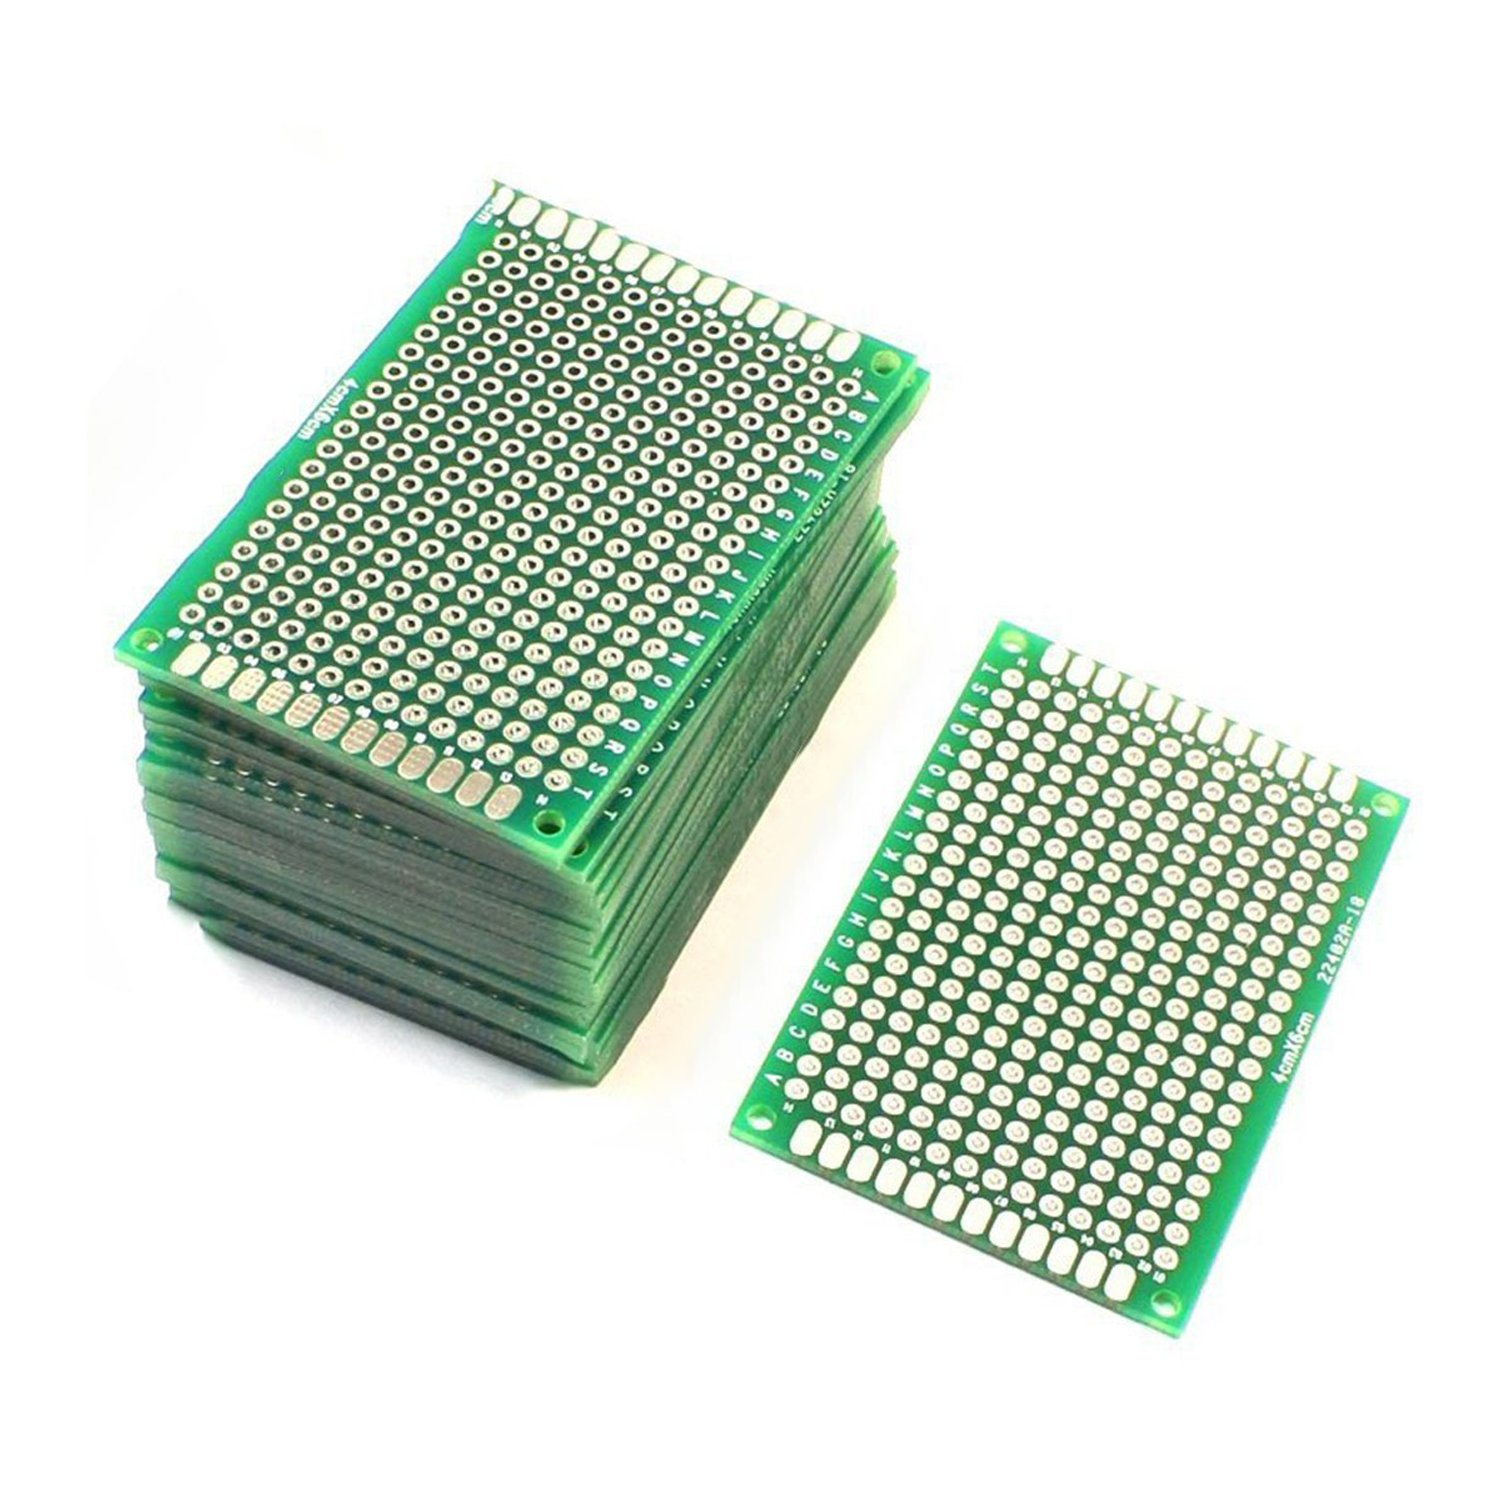 saim pcb board prototype double sided diy pcb prototype solderable